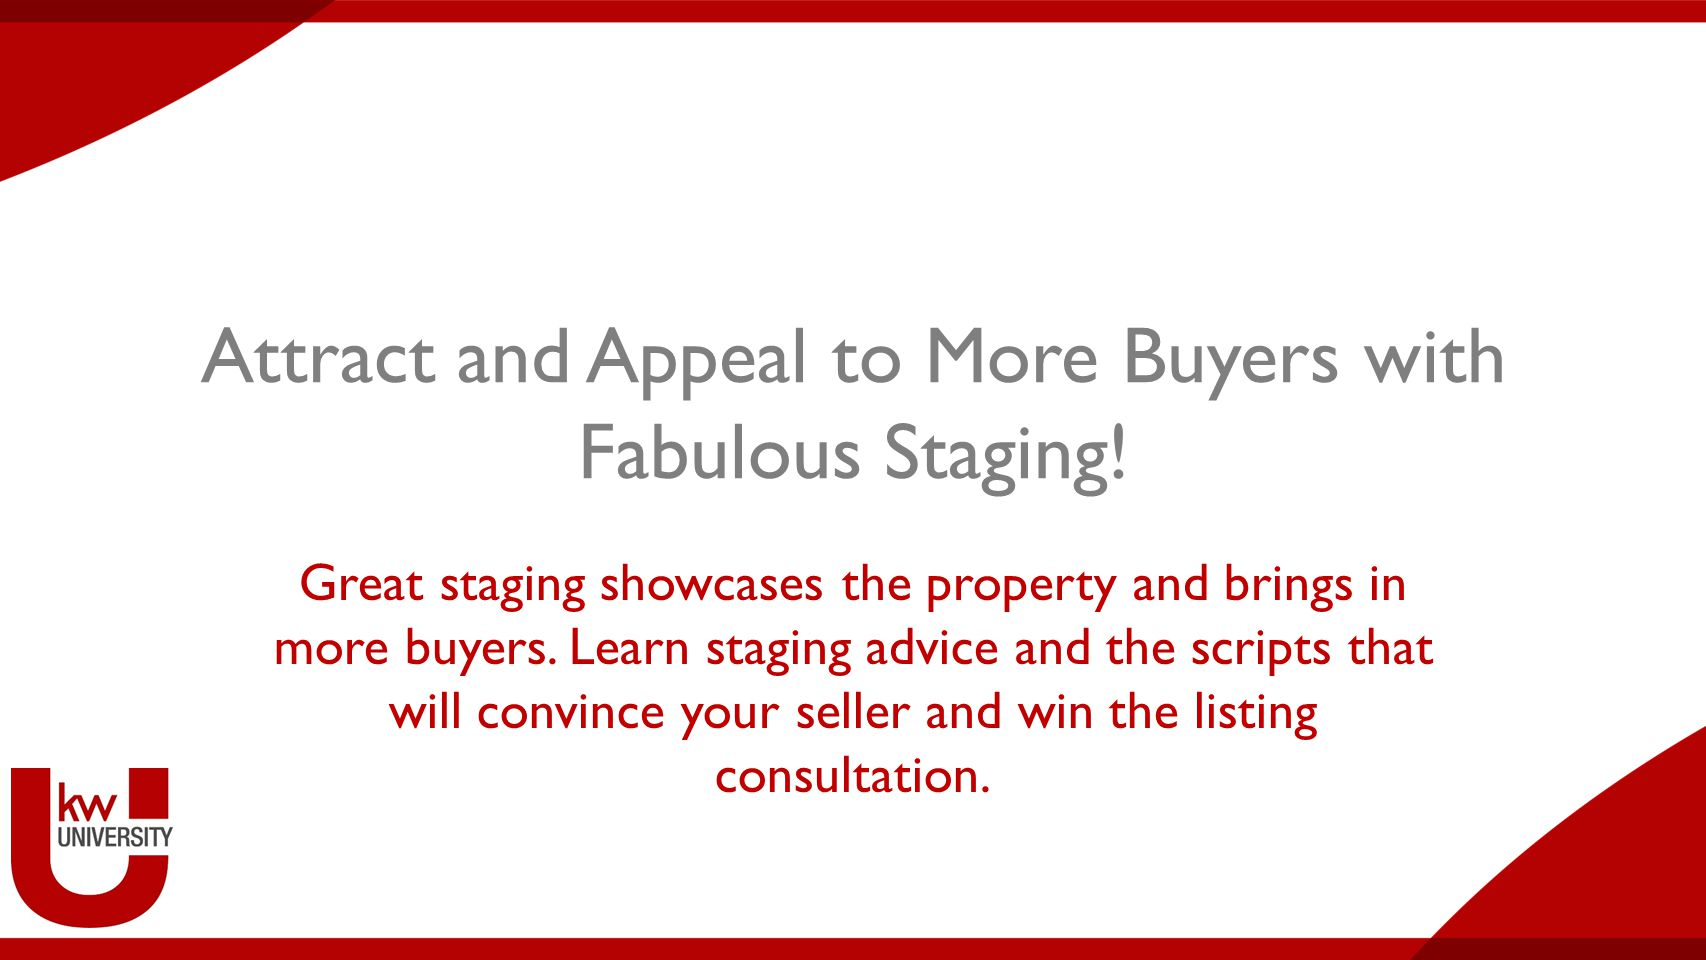 Attract and Appeal to More Buyers with Fabulous Staging.